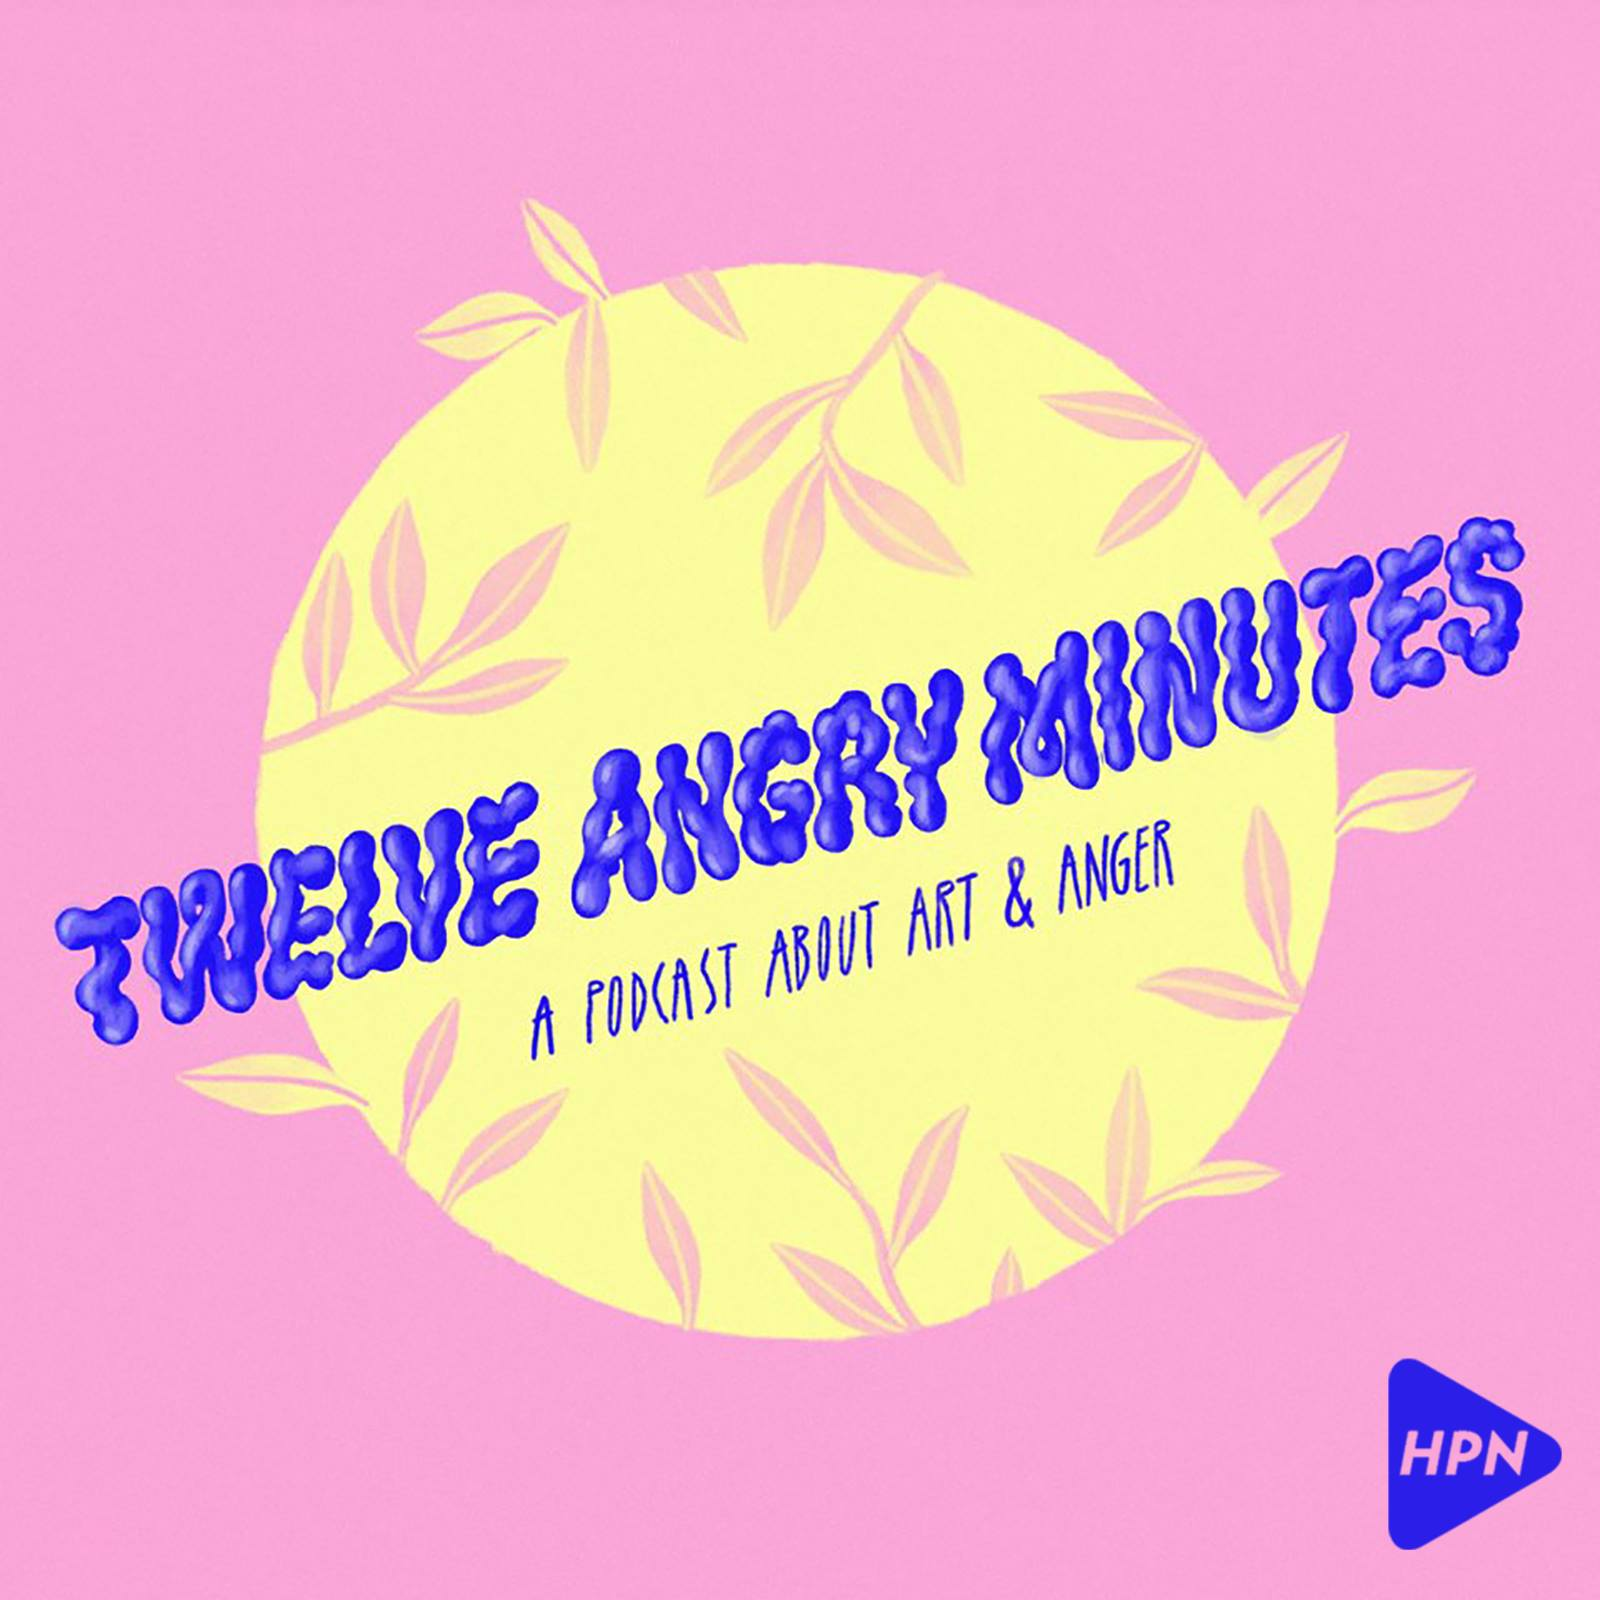 Twelve Angry Minutes podcast, guts magazine, Roisin Agnew - HeadStuff.org